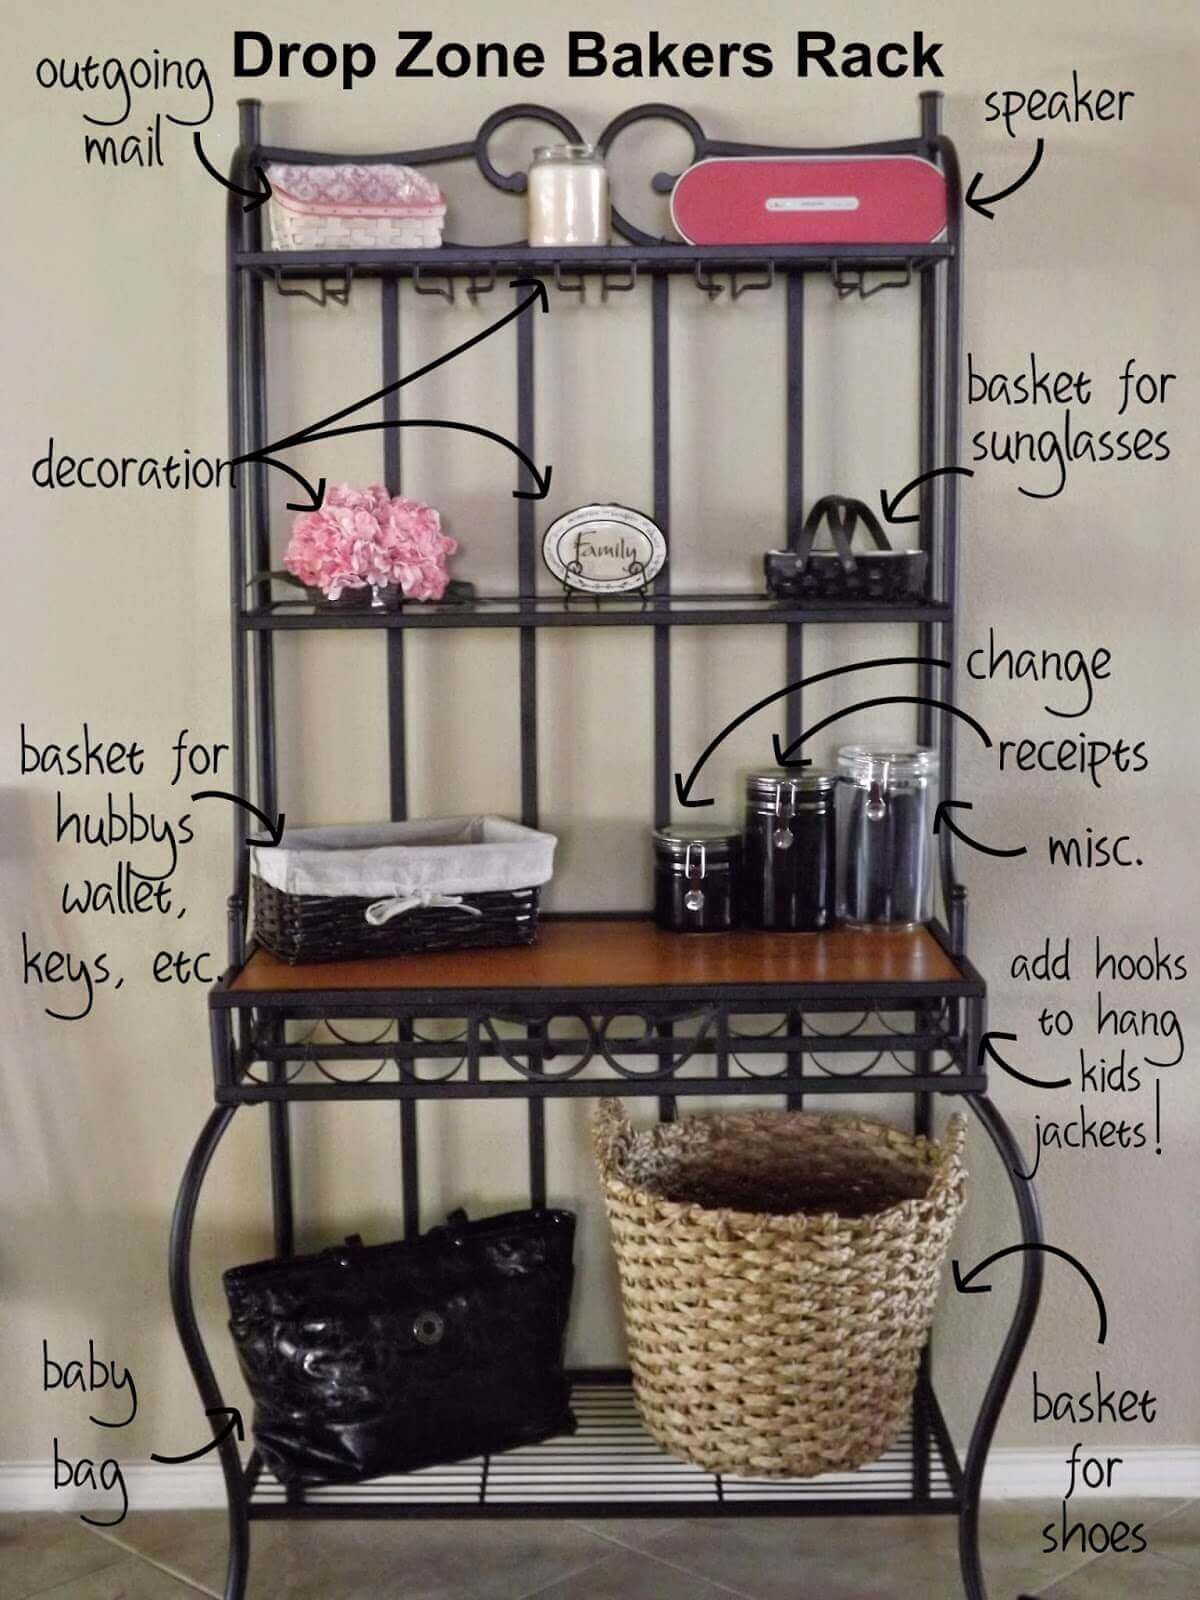 9 Diy Mudroom Drop Zone Ideas For Your Home Bakers Rack